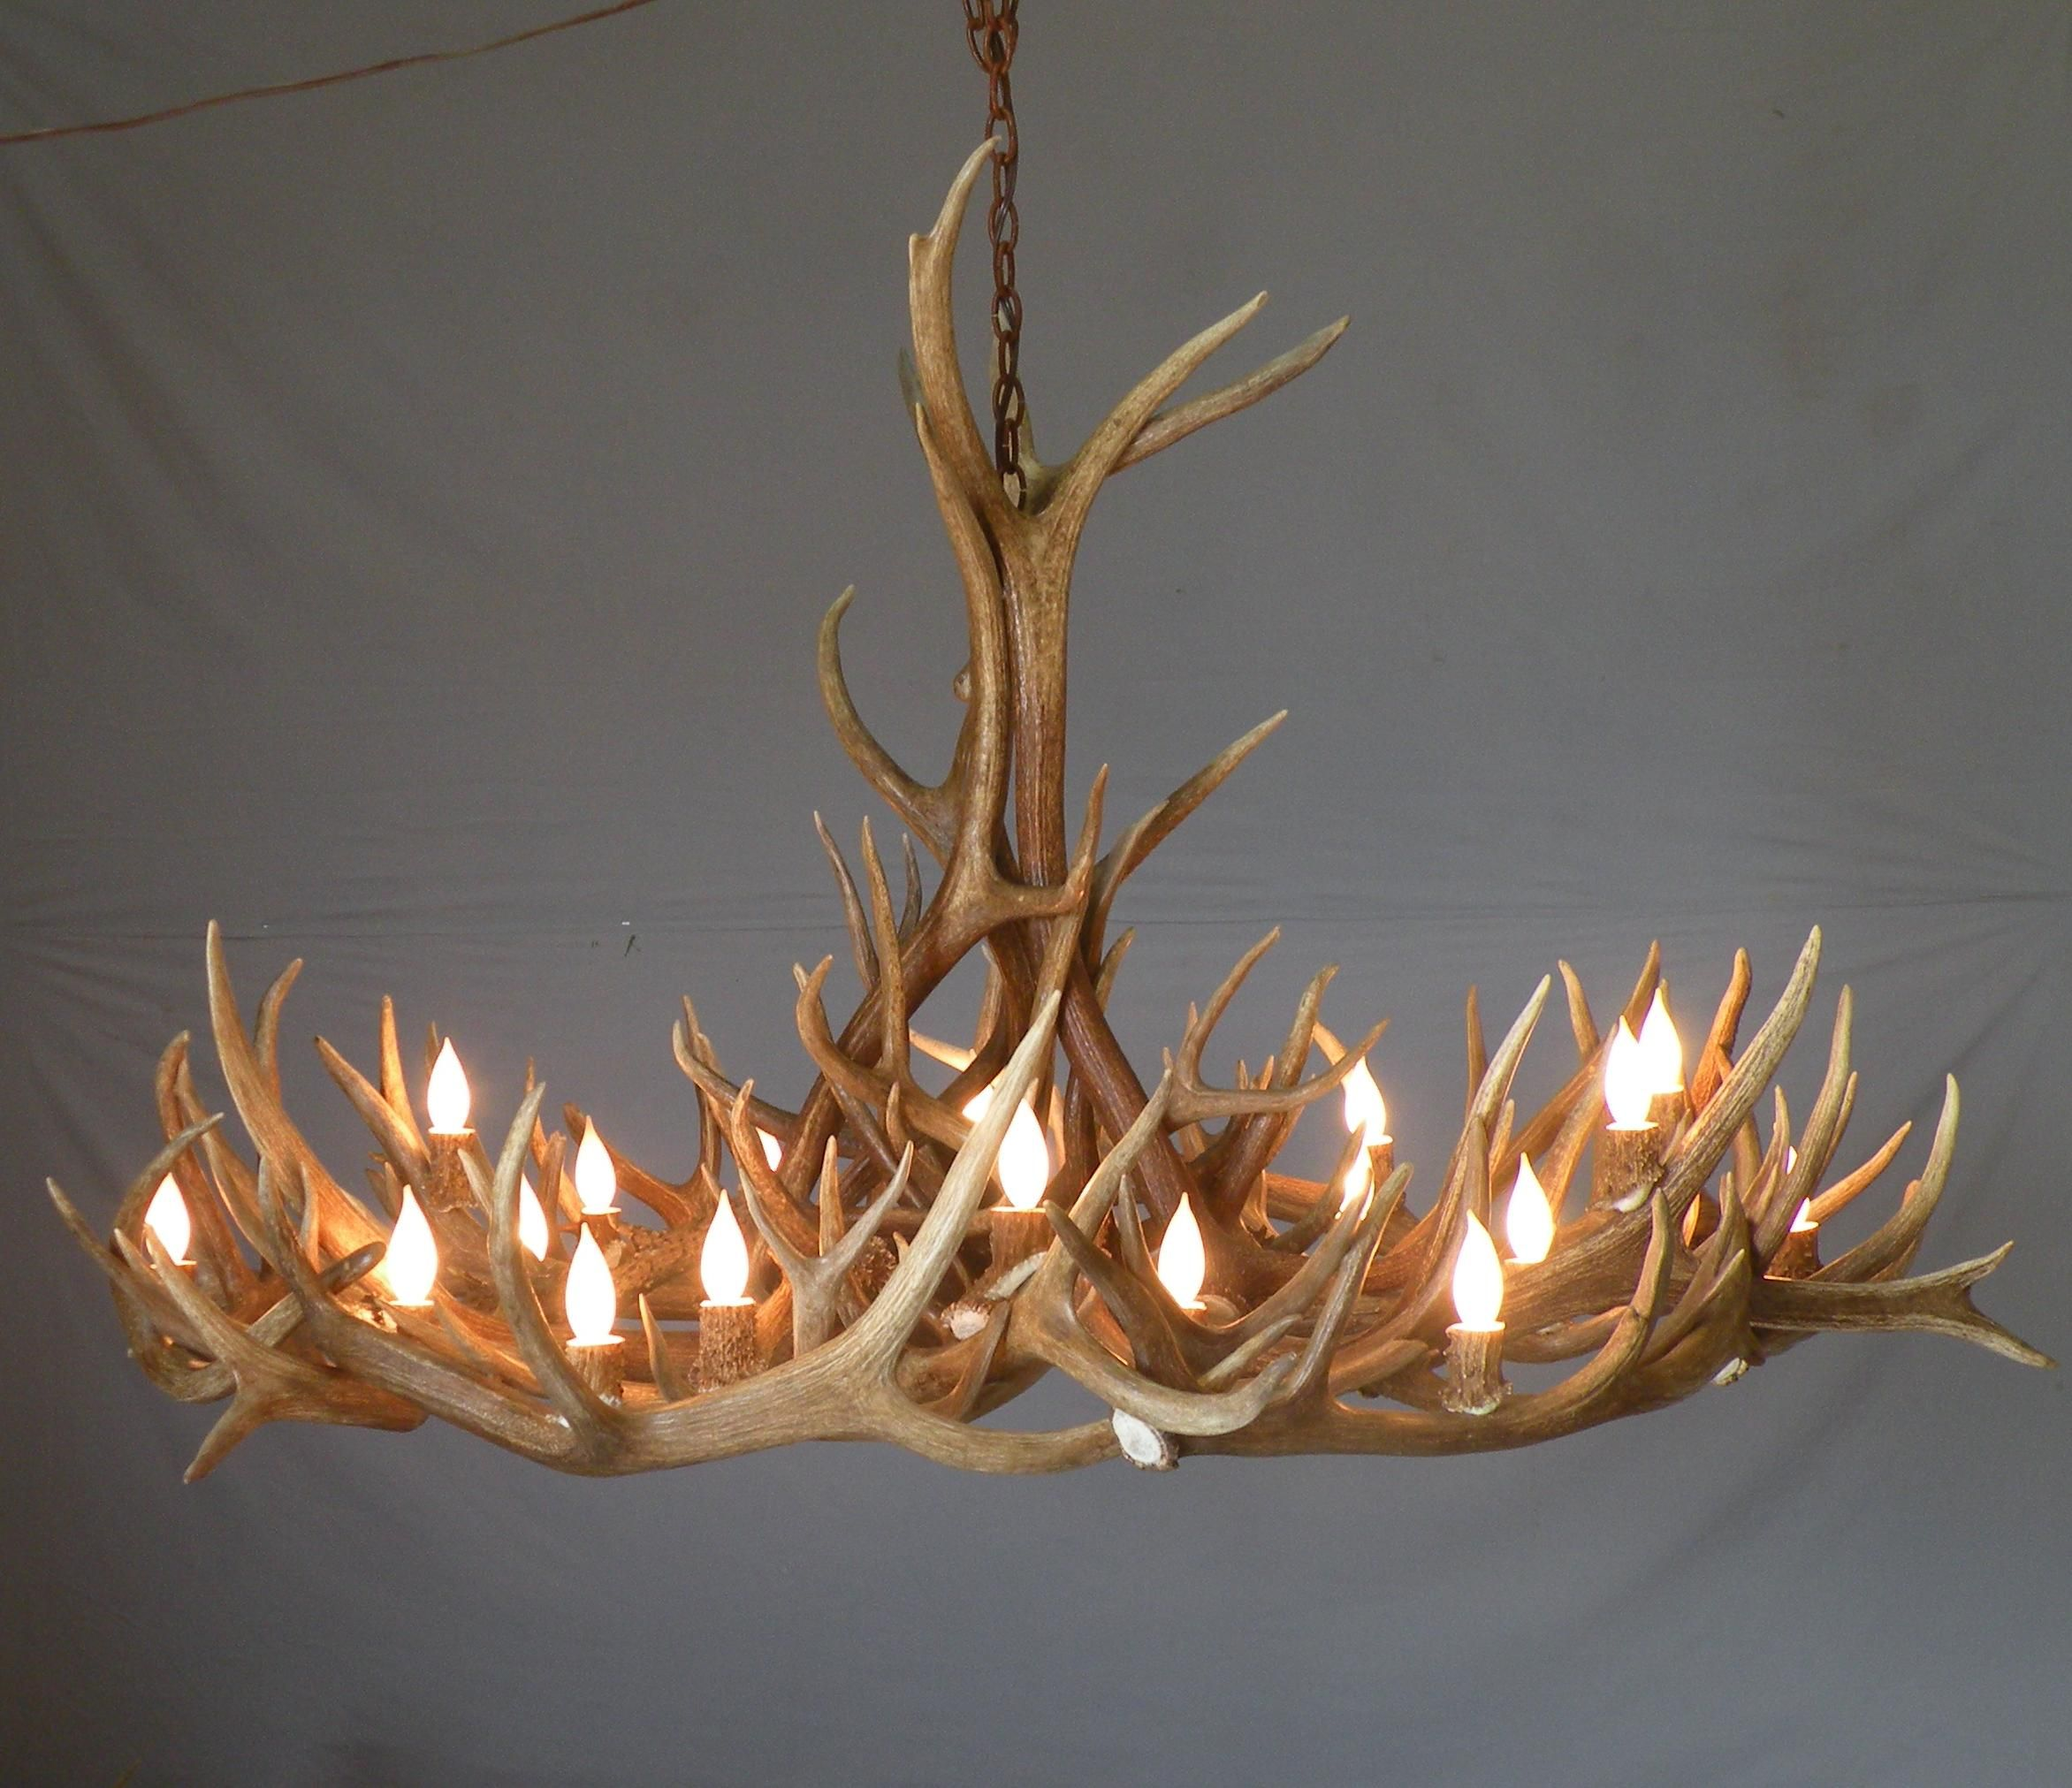 deer ceilings wdays antler fan architecture info ceiling fans throughout lamp chandelier canada ideas